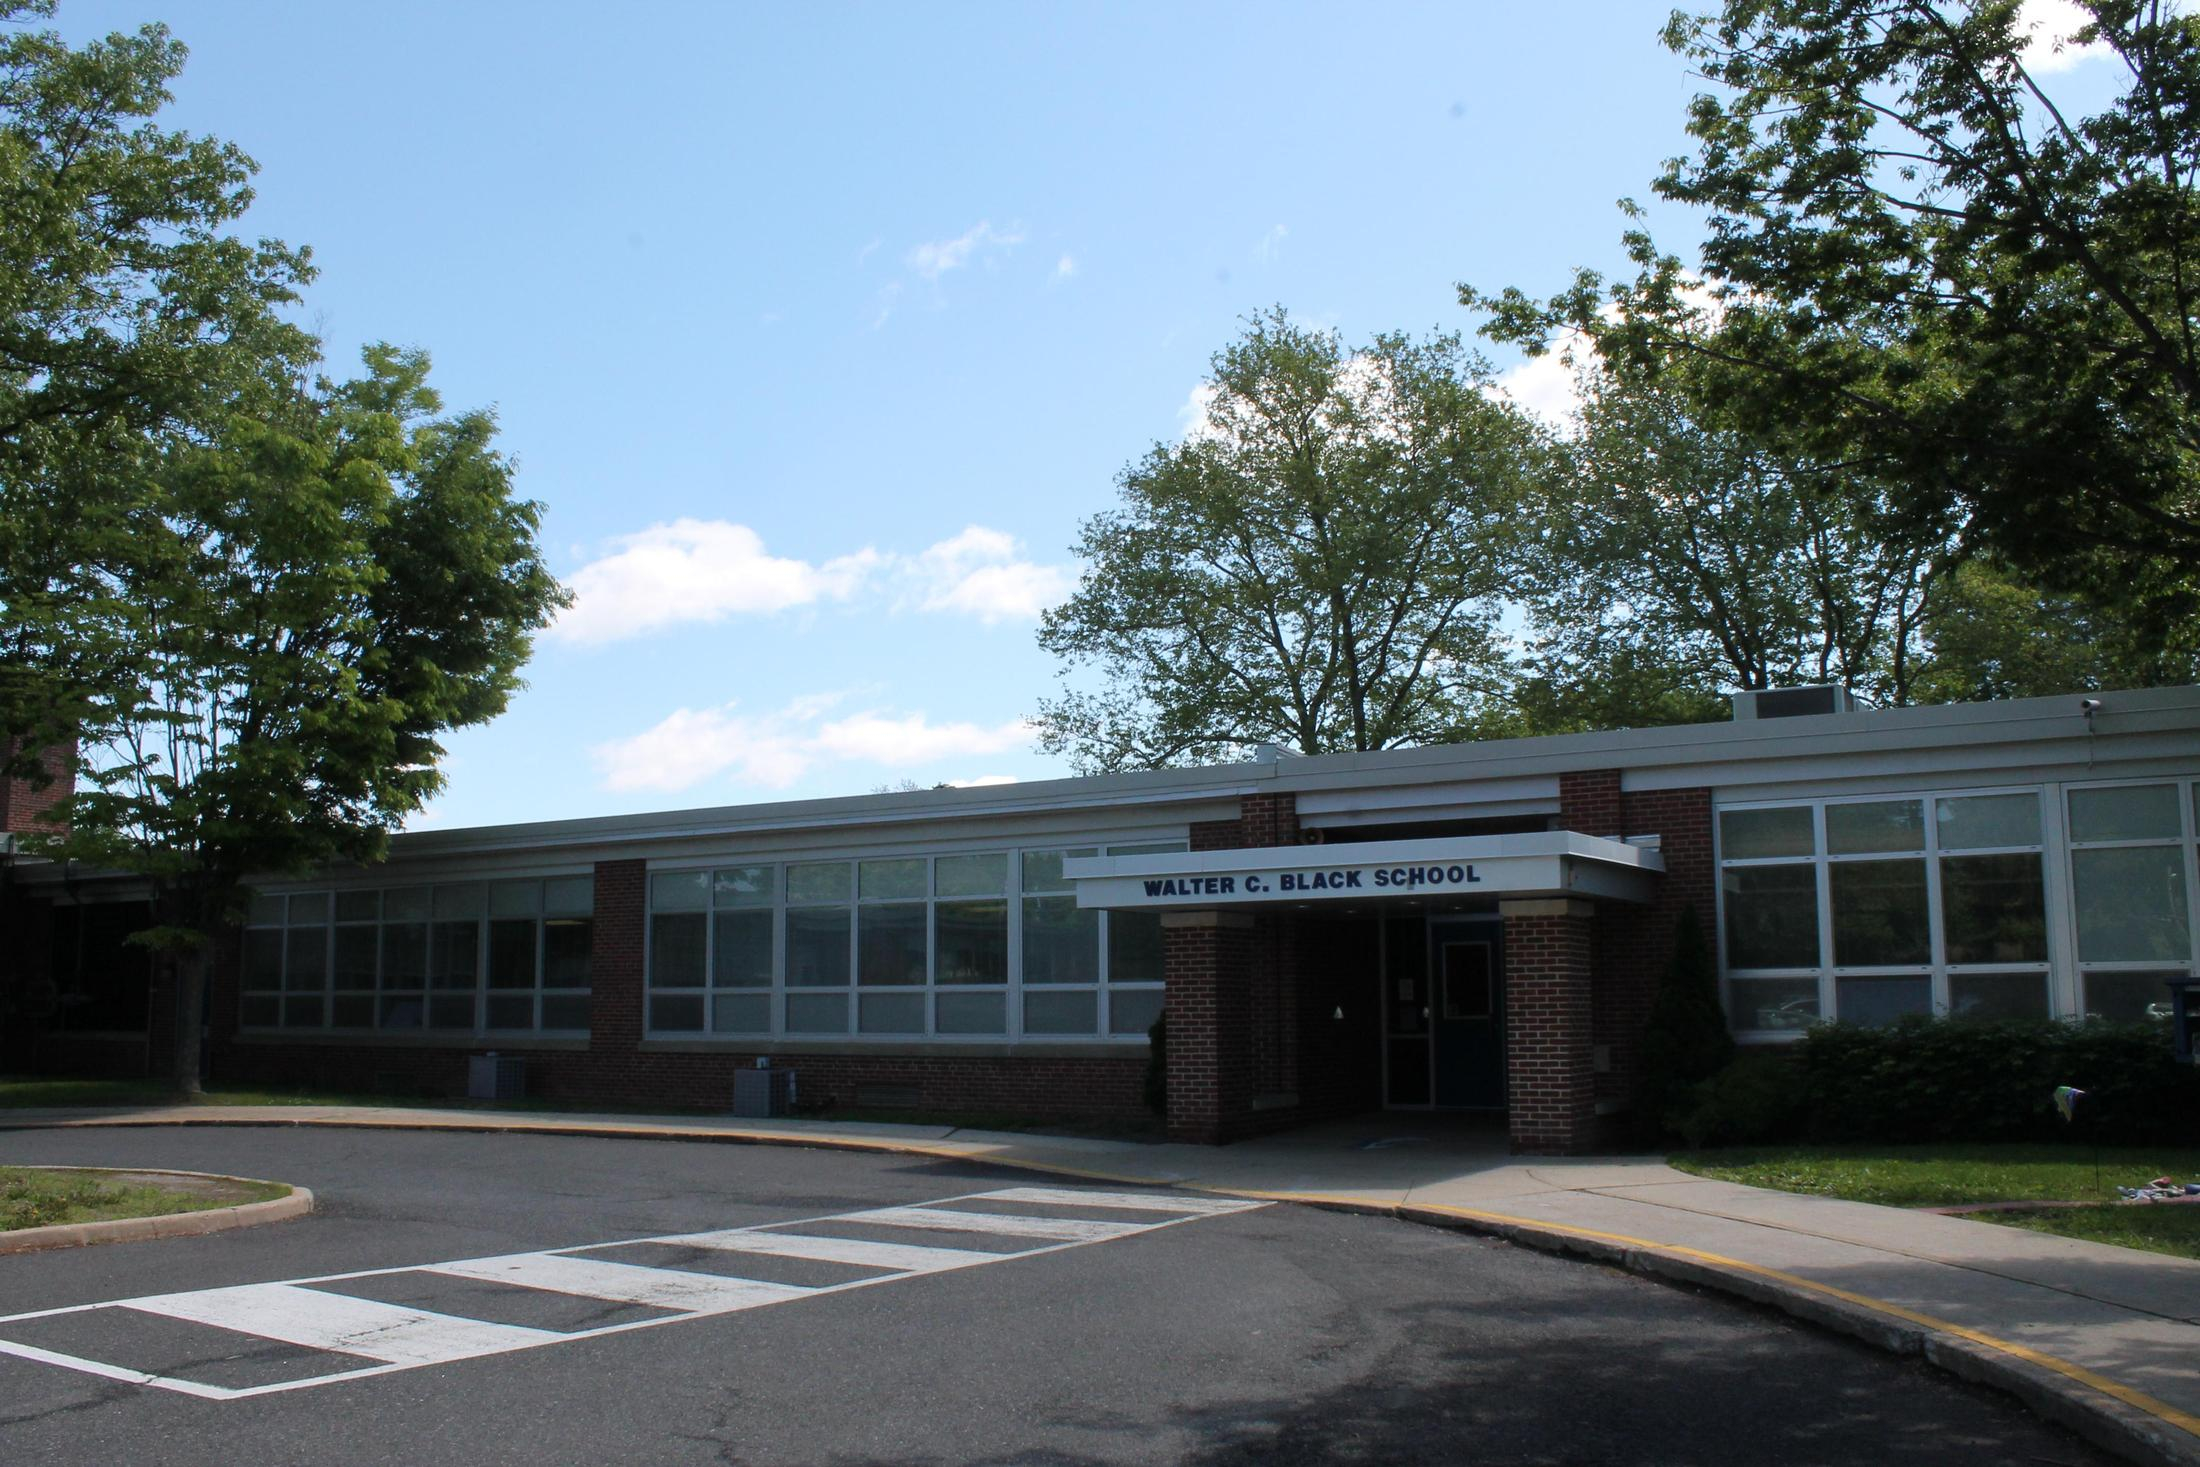 Walter C. Black Elementary School – Walter C. Black For East Windsor School Calendar 2021